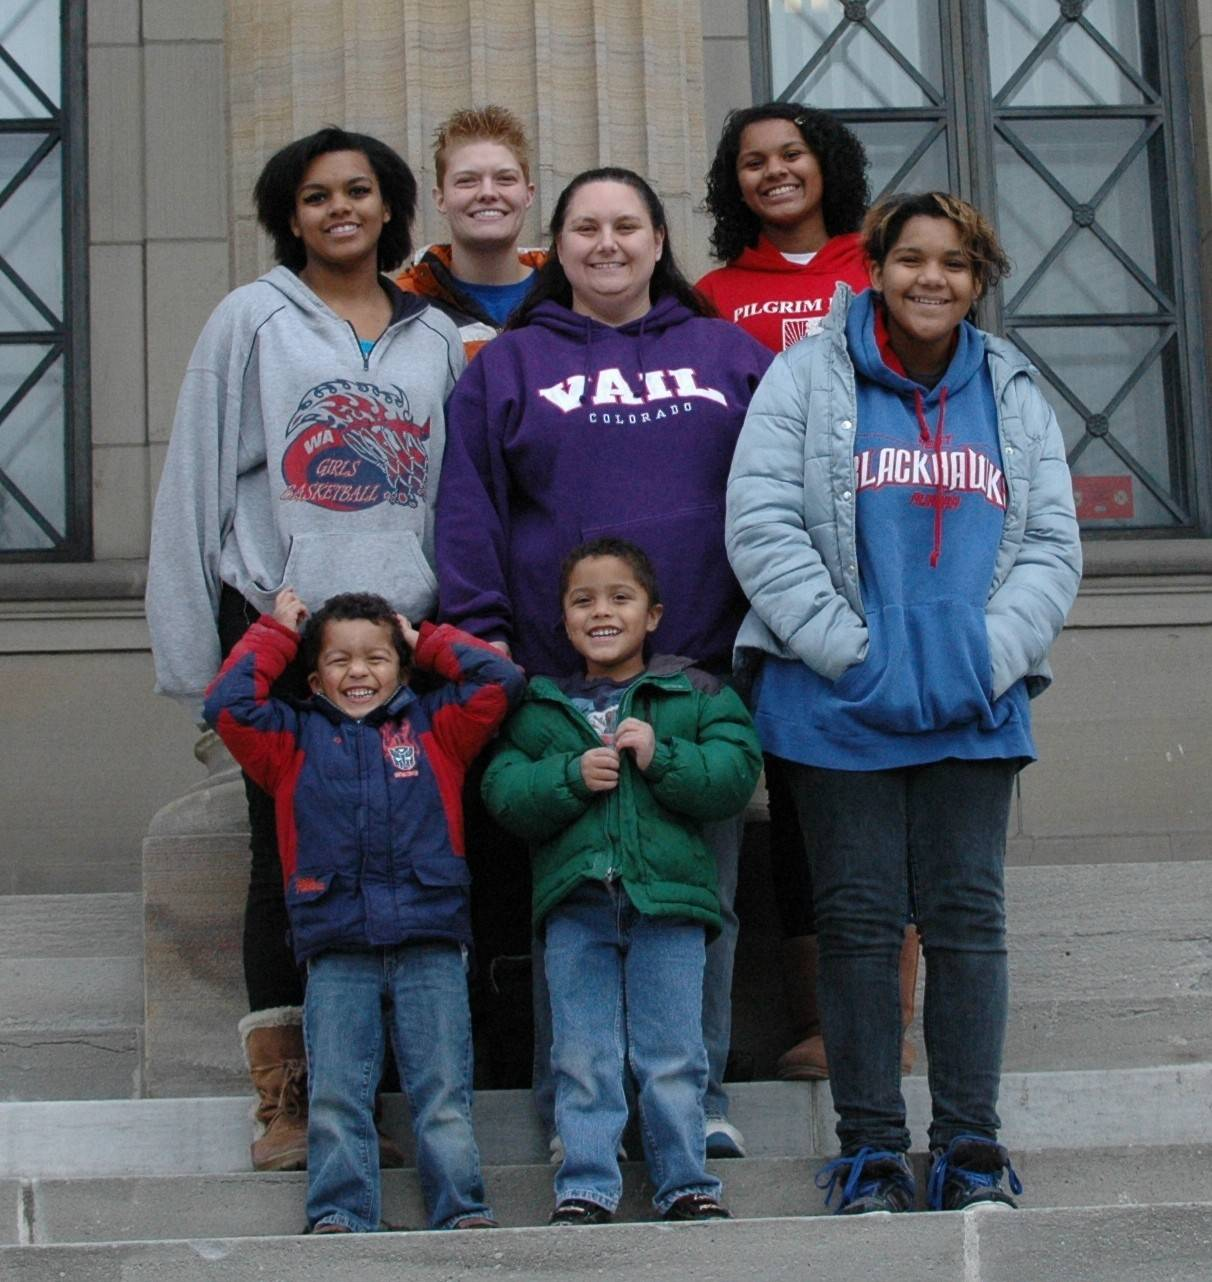 All smiles after getting their marriage license in 2011 in Niagara Falls, N.Y., Aurora moms Beth Keenan, in Vail shirt, and Geneva Fry, left on upper row, boast a family of daughters, from left to right, Mary, Katherine and Adriana, and twin sons, Logan, left, and Toby.